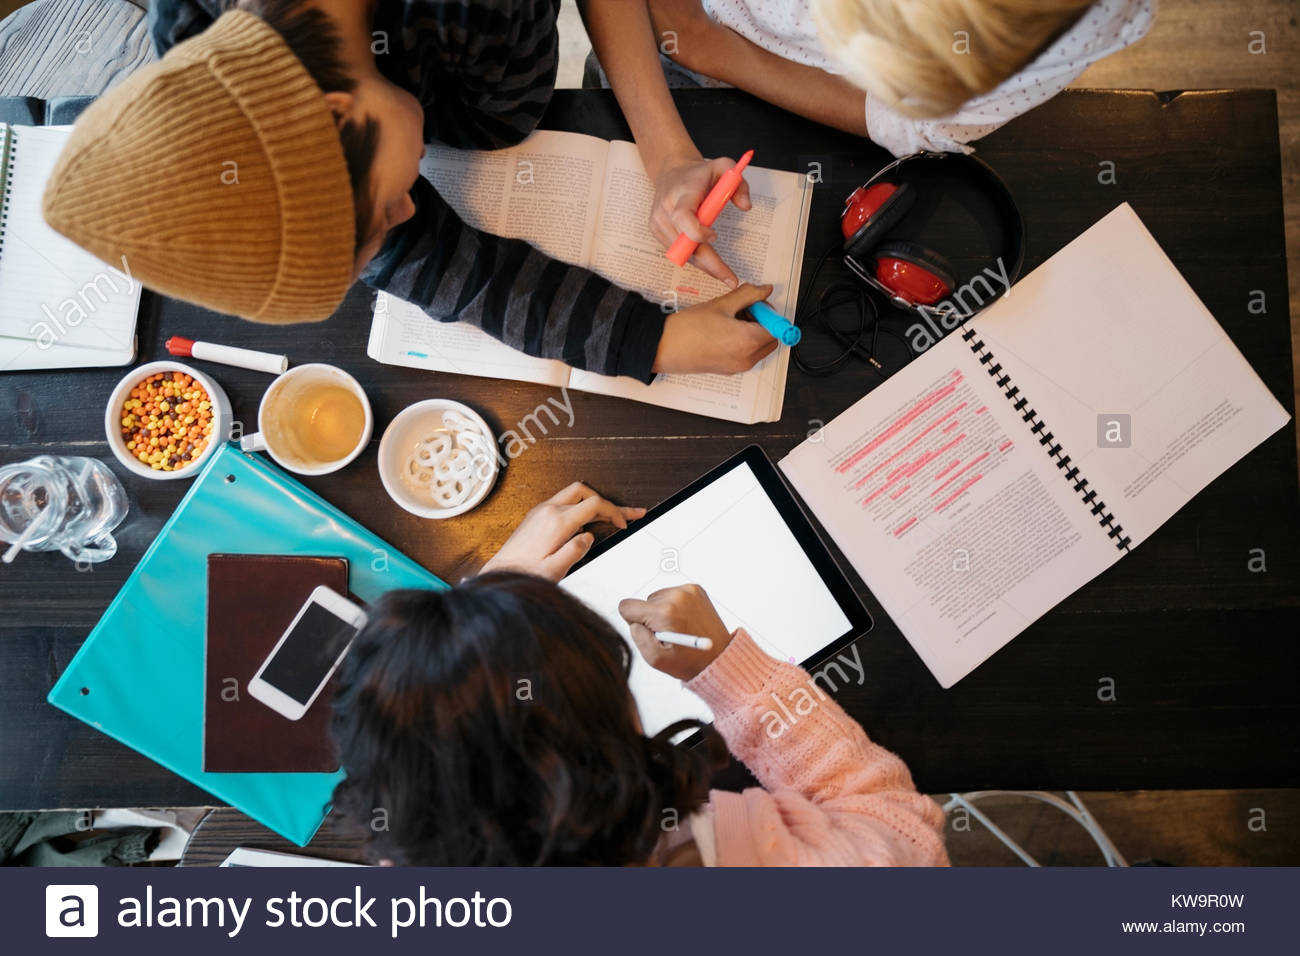 Overhead view high school students studying,highlighting textbook at cafe table - Stock Image